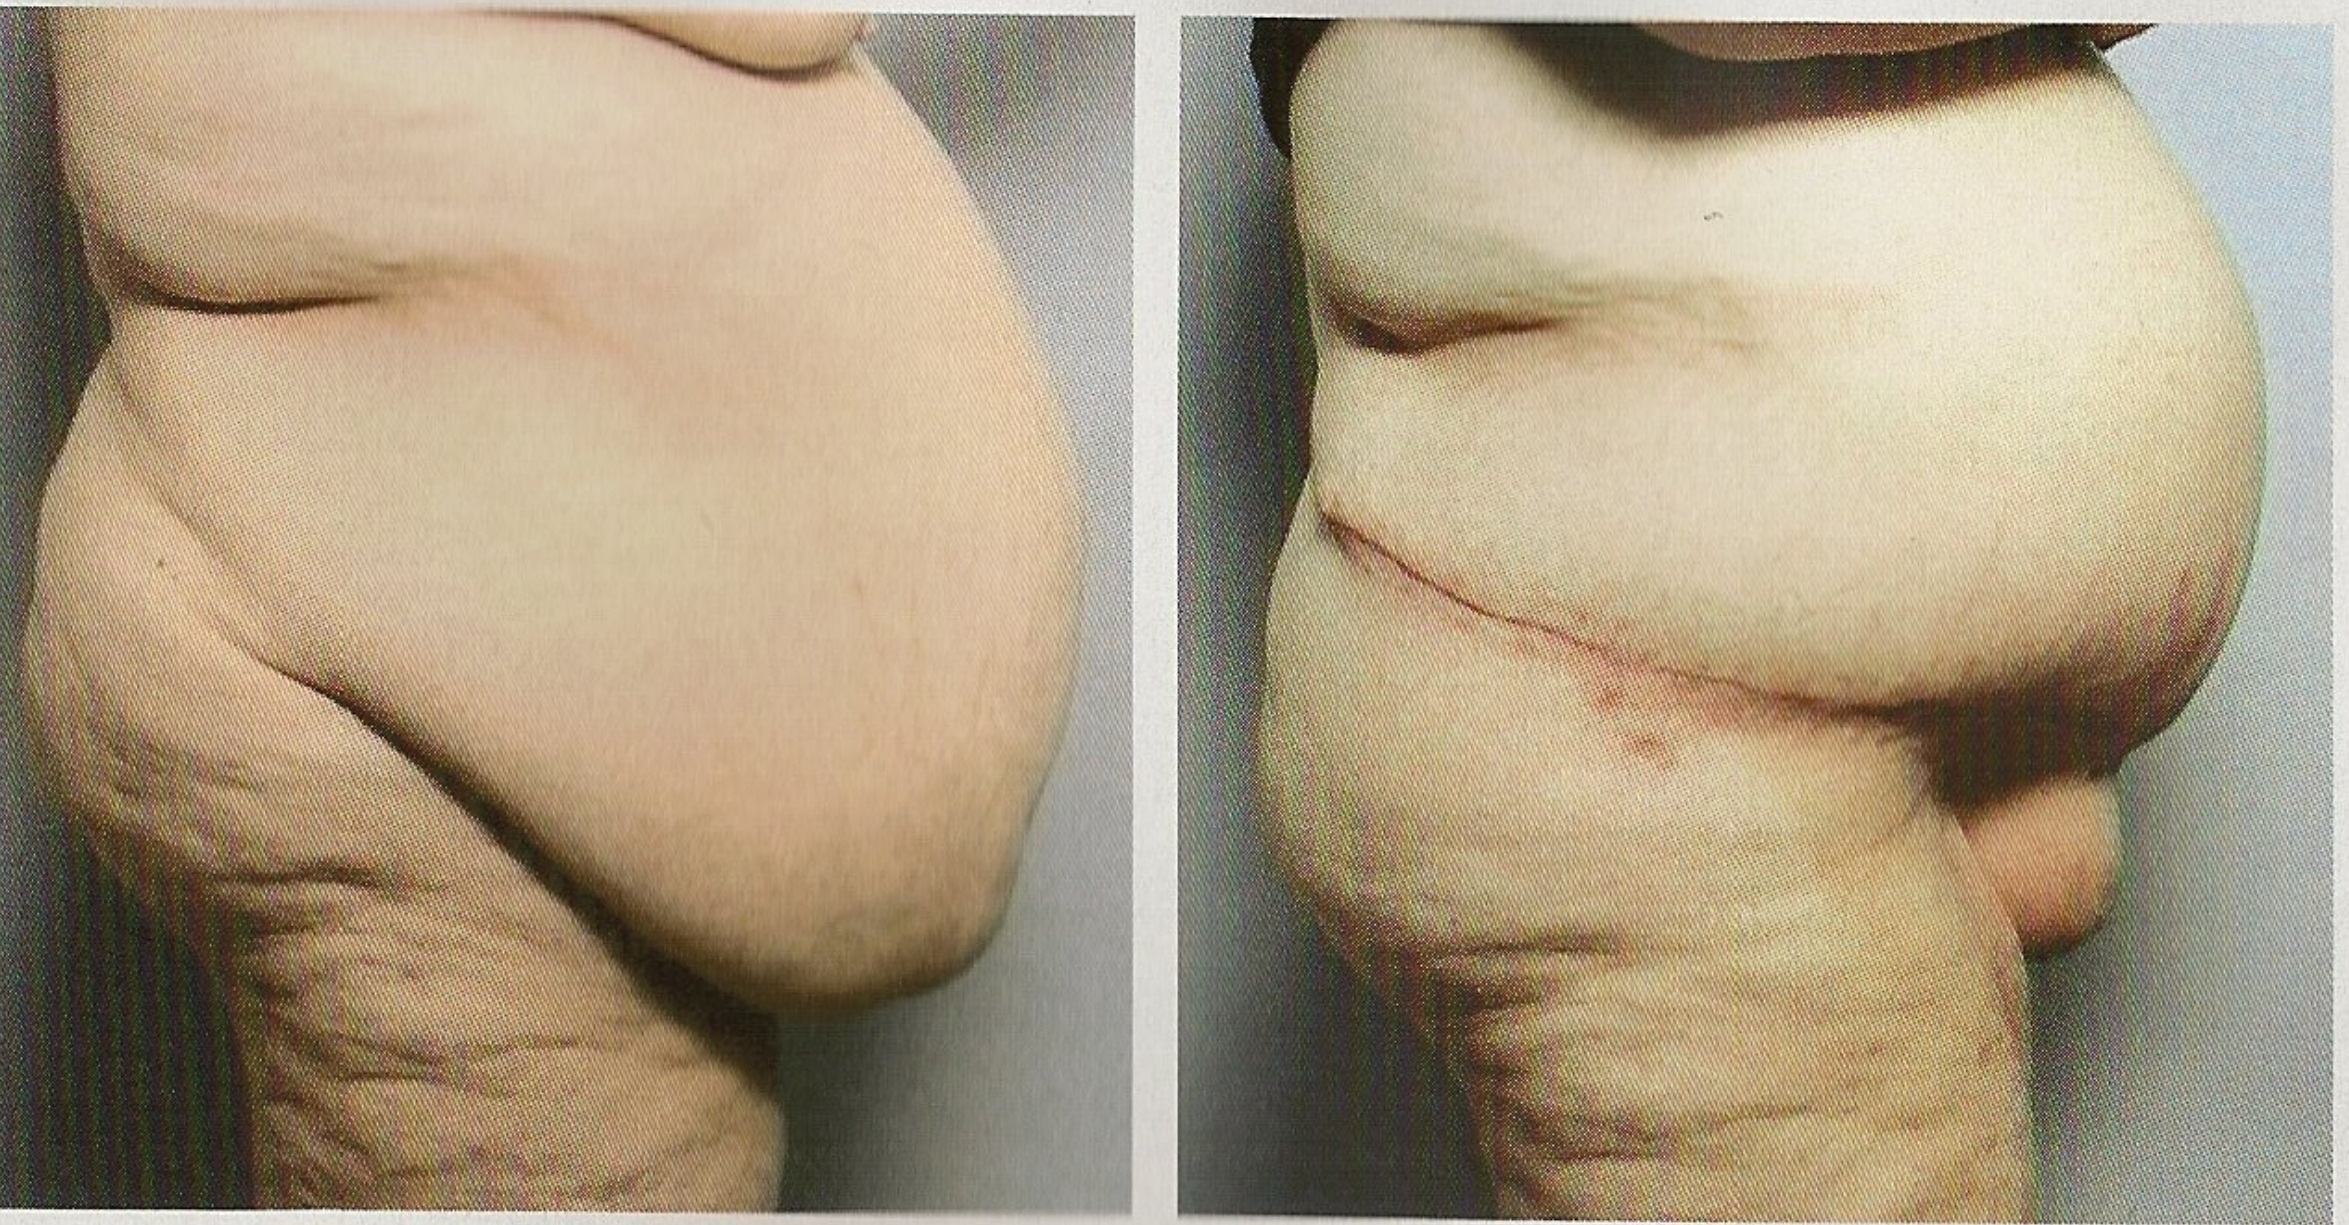 Do diet pills affect your health image 2